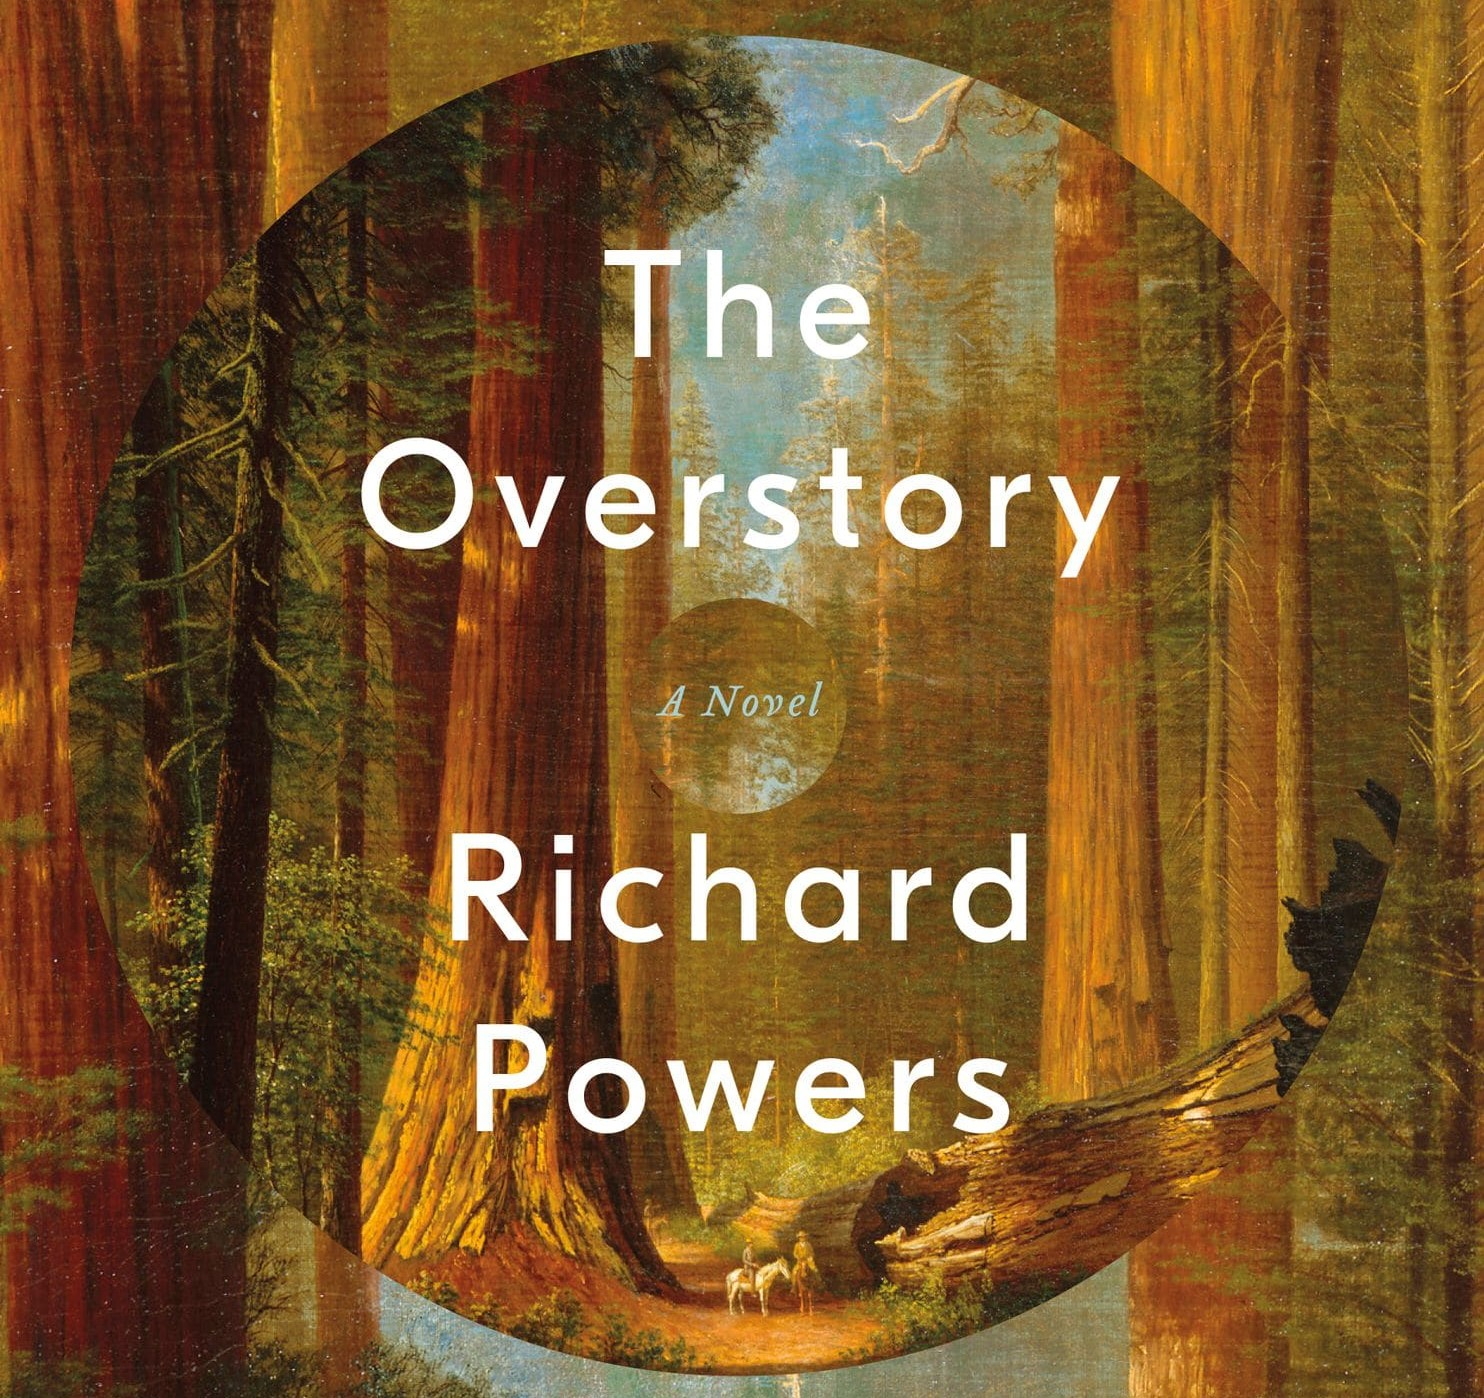 The Overstory by Richard Powers - Natural Happiness